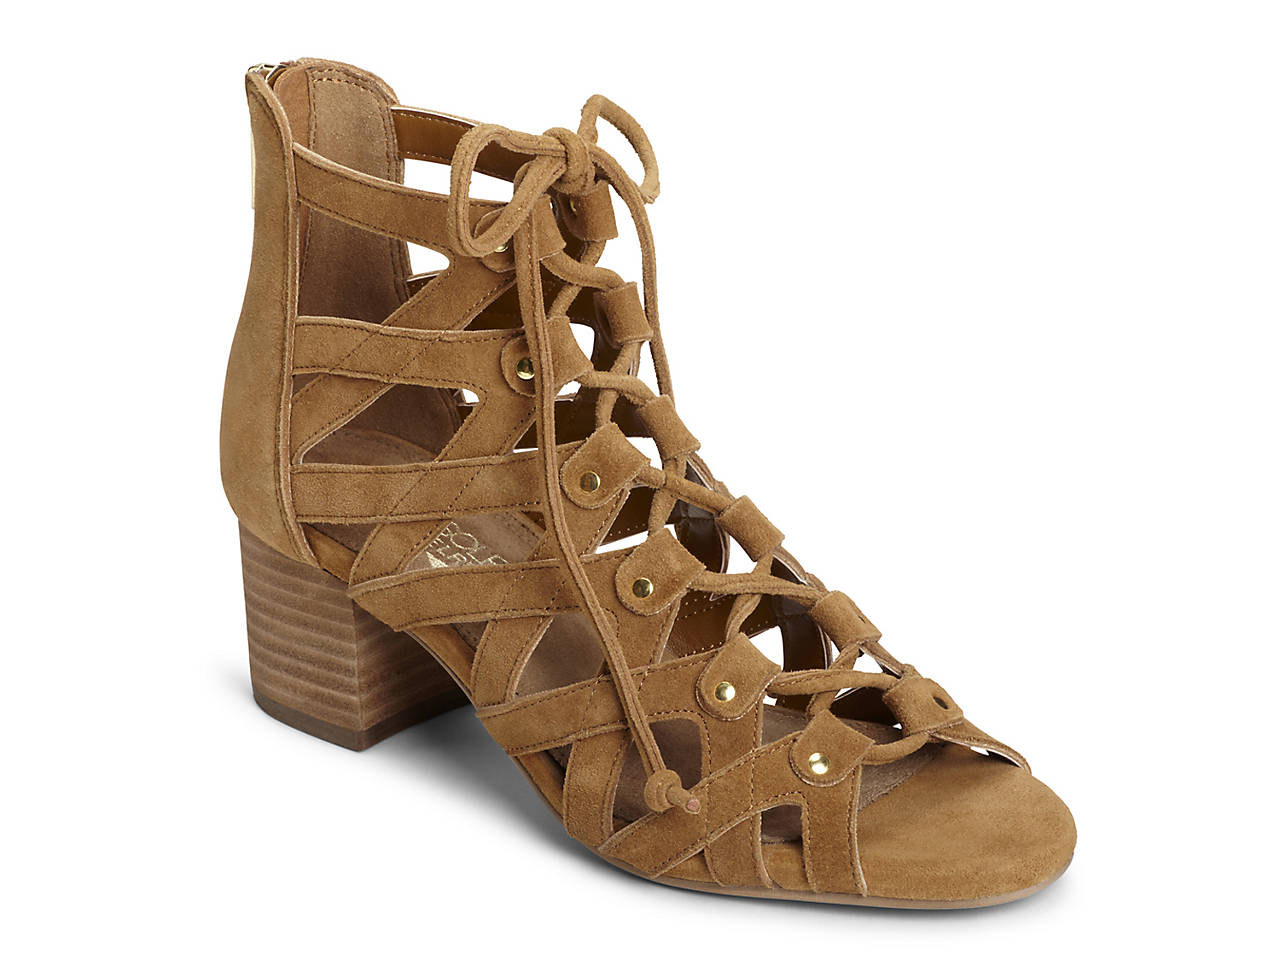 Aerosoles Middle Ground Ghillie Lace Sandal(Women's) -Dark Tan Suede Cheapest Price Extremely Cheap Price Buy Cheap Best Wholesale Clearance Prices bQar9L2upZ